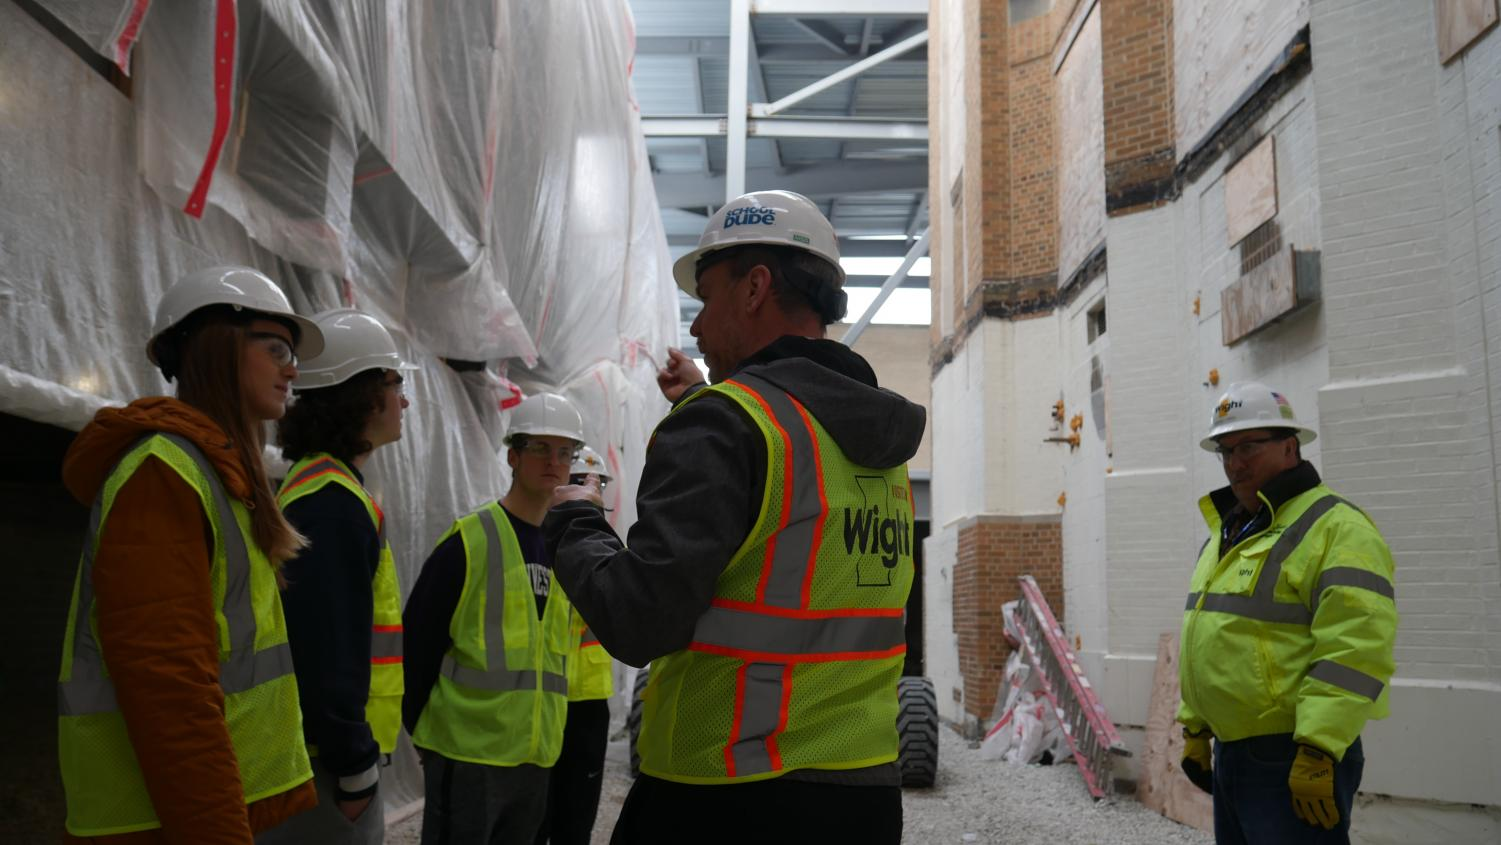 Dr. Sorensen explains where a new door will be located to the Omega staff members.